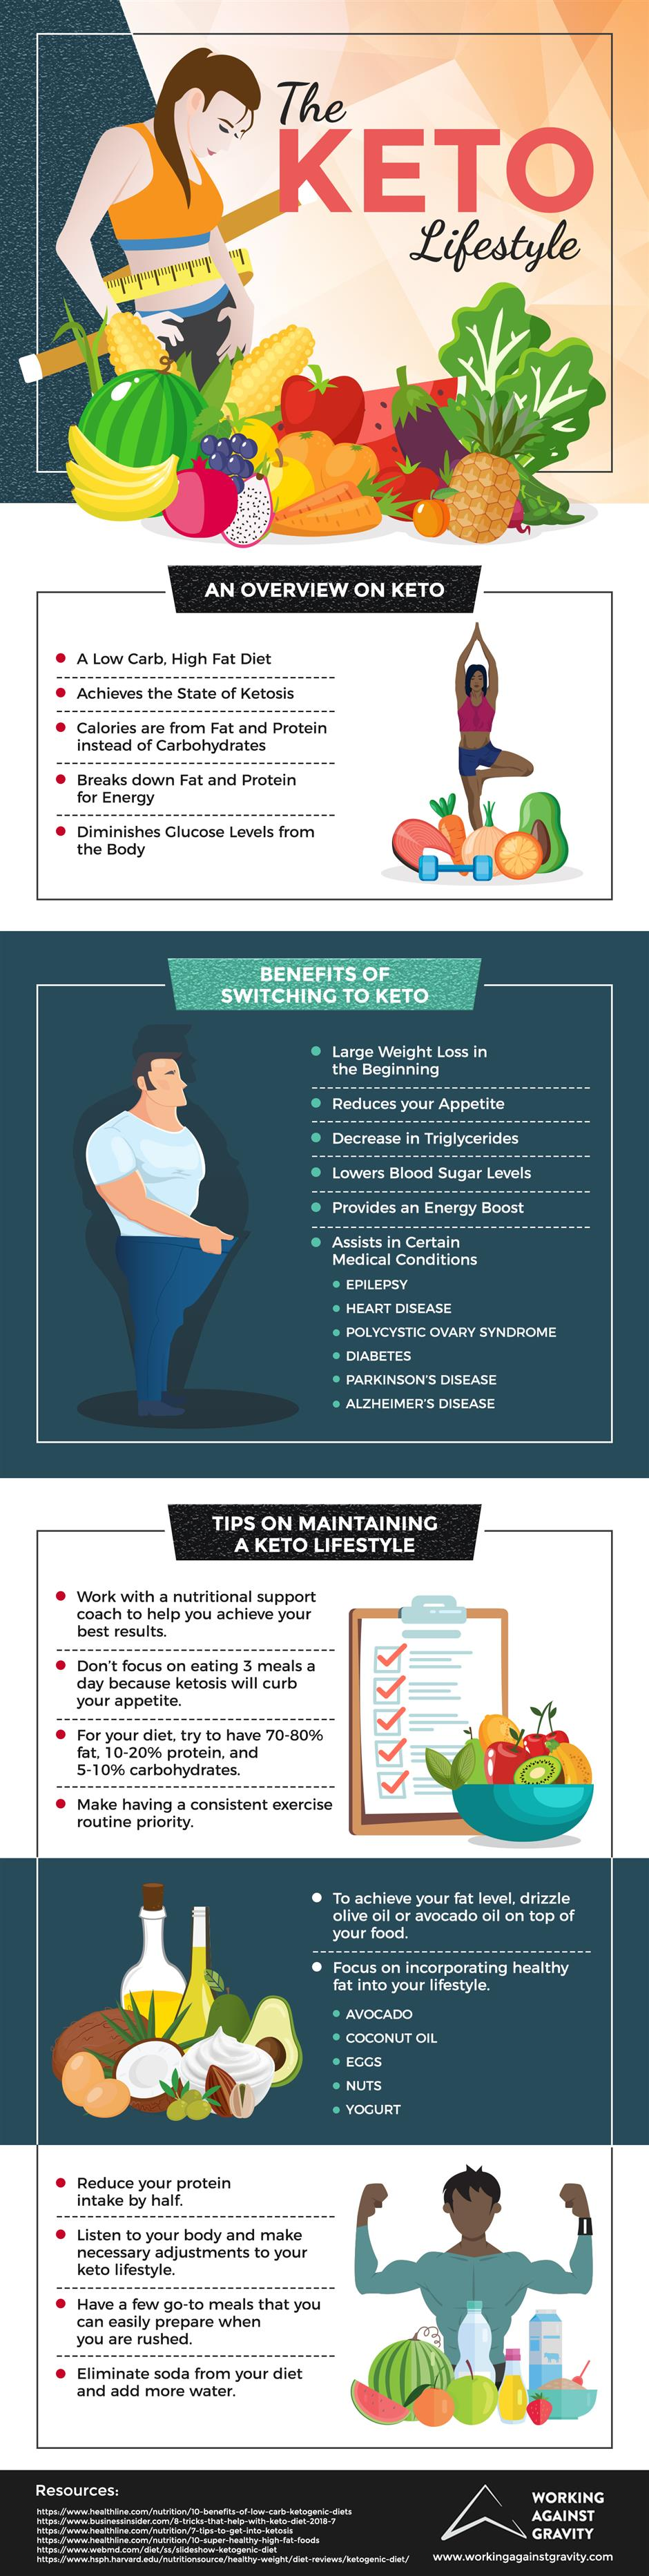 Keto Lifestyle Guide